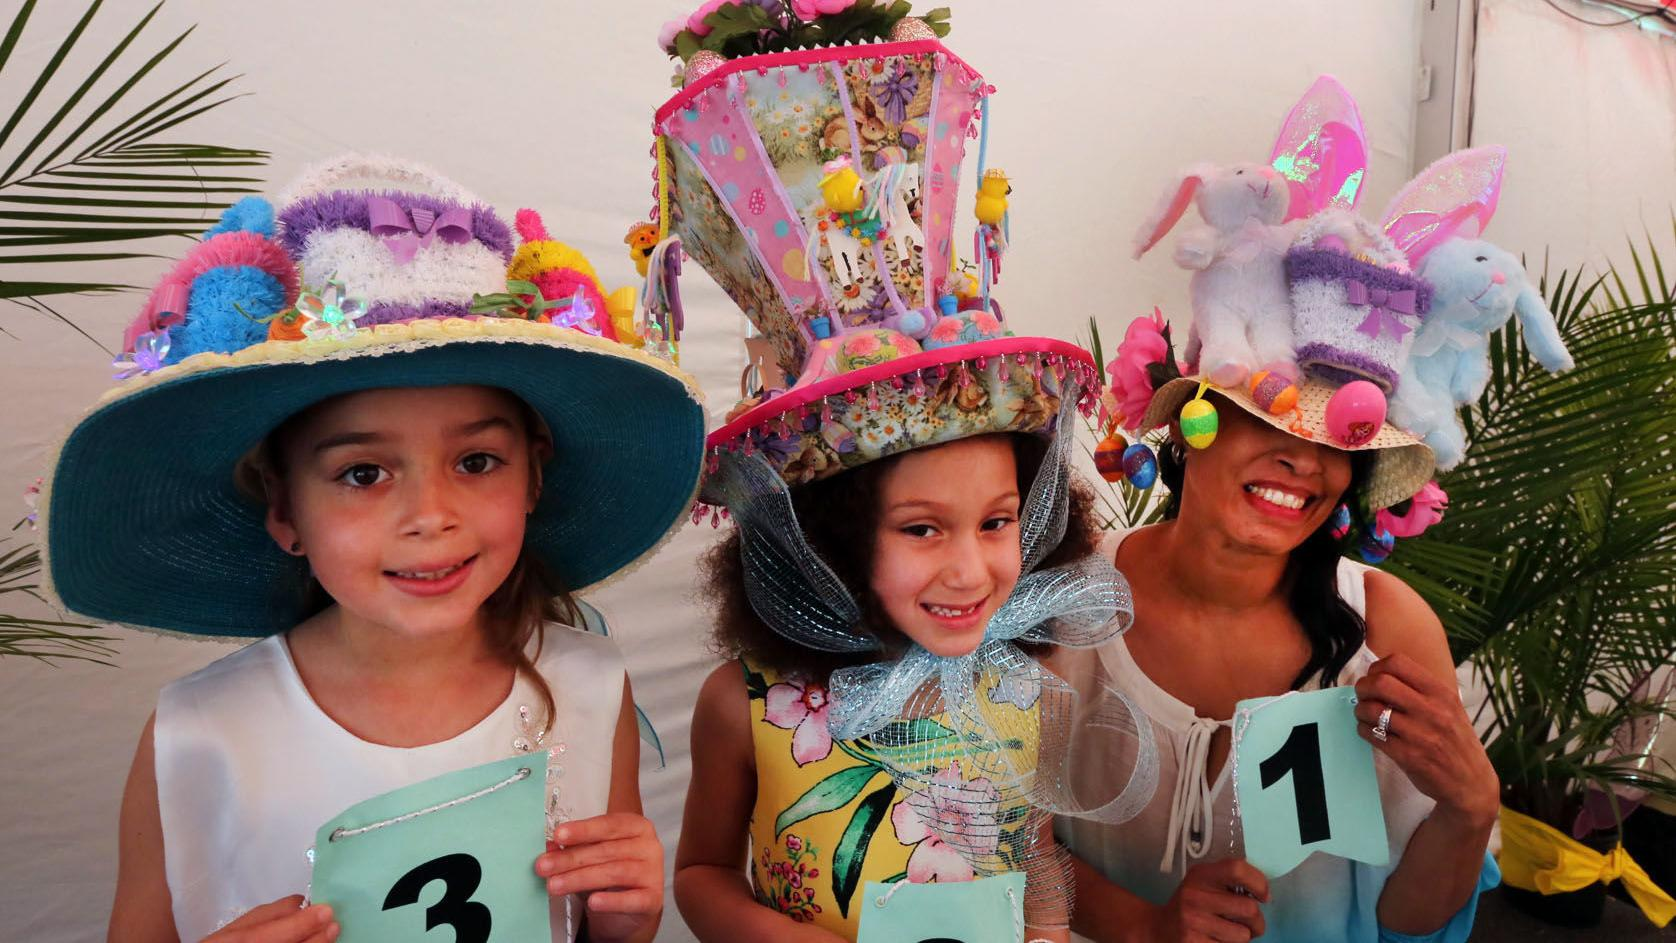 Bonnets, dresses and bows on display at Steel Pier's Easter fashion show